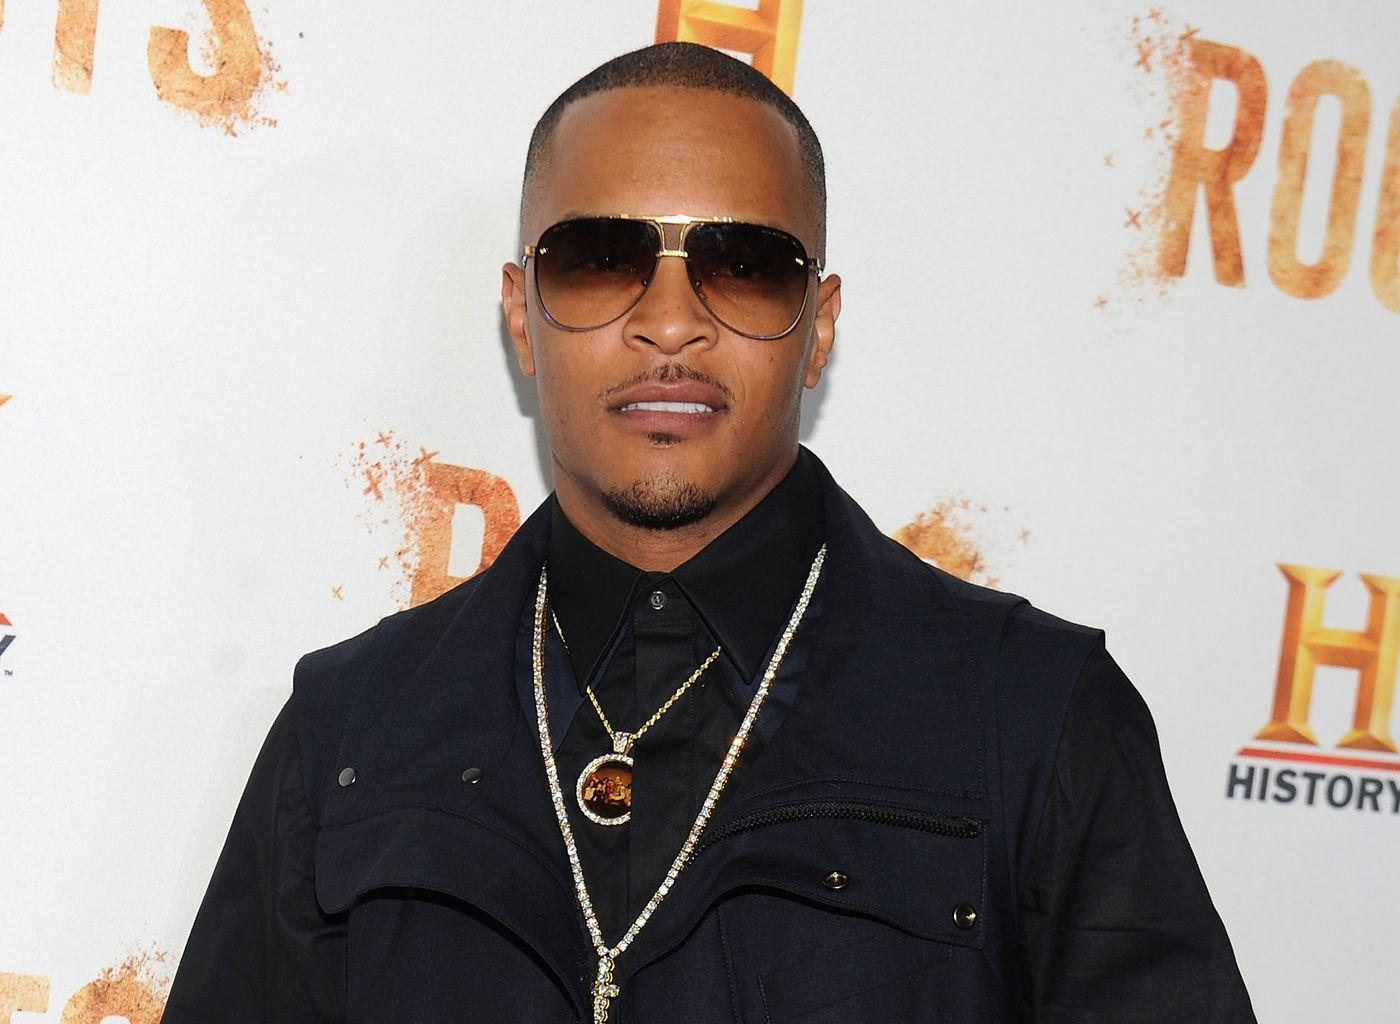 T.I. Advises Fans Not To Panic, But Remain Informed